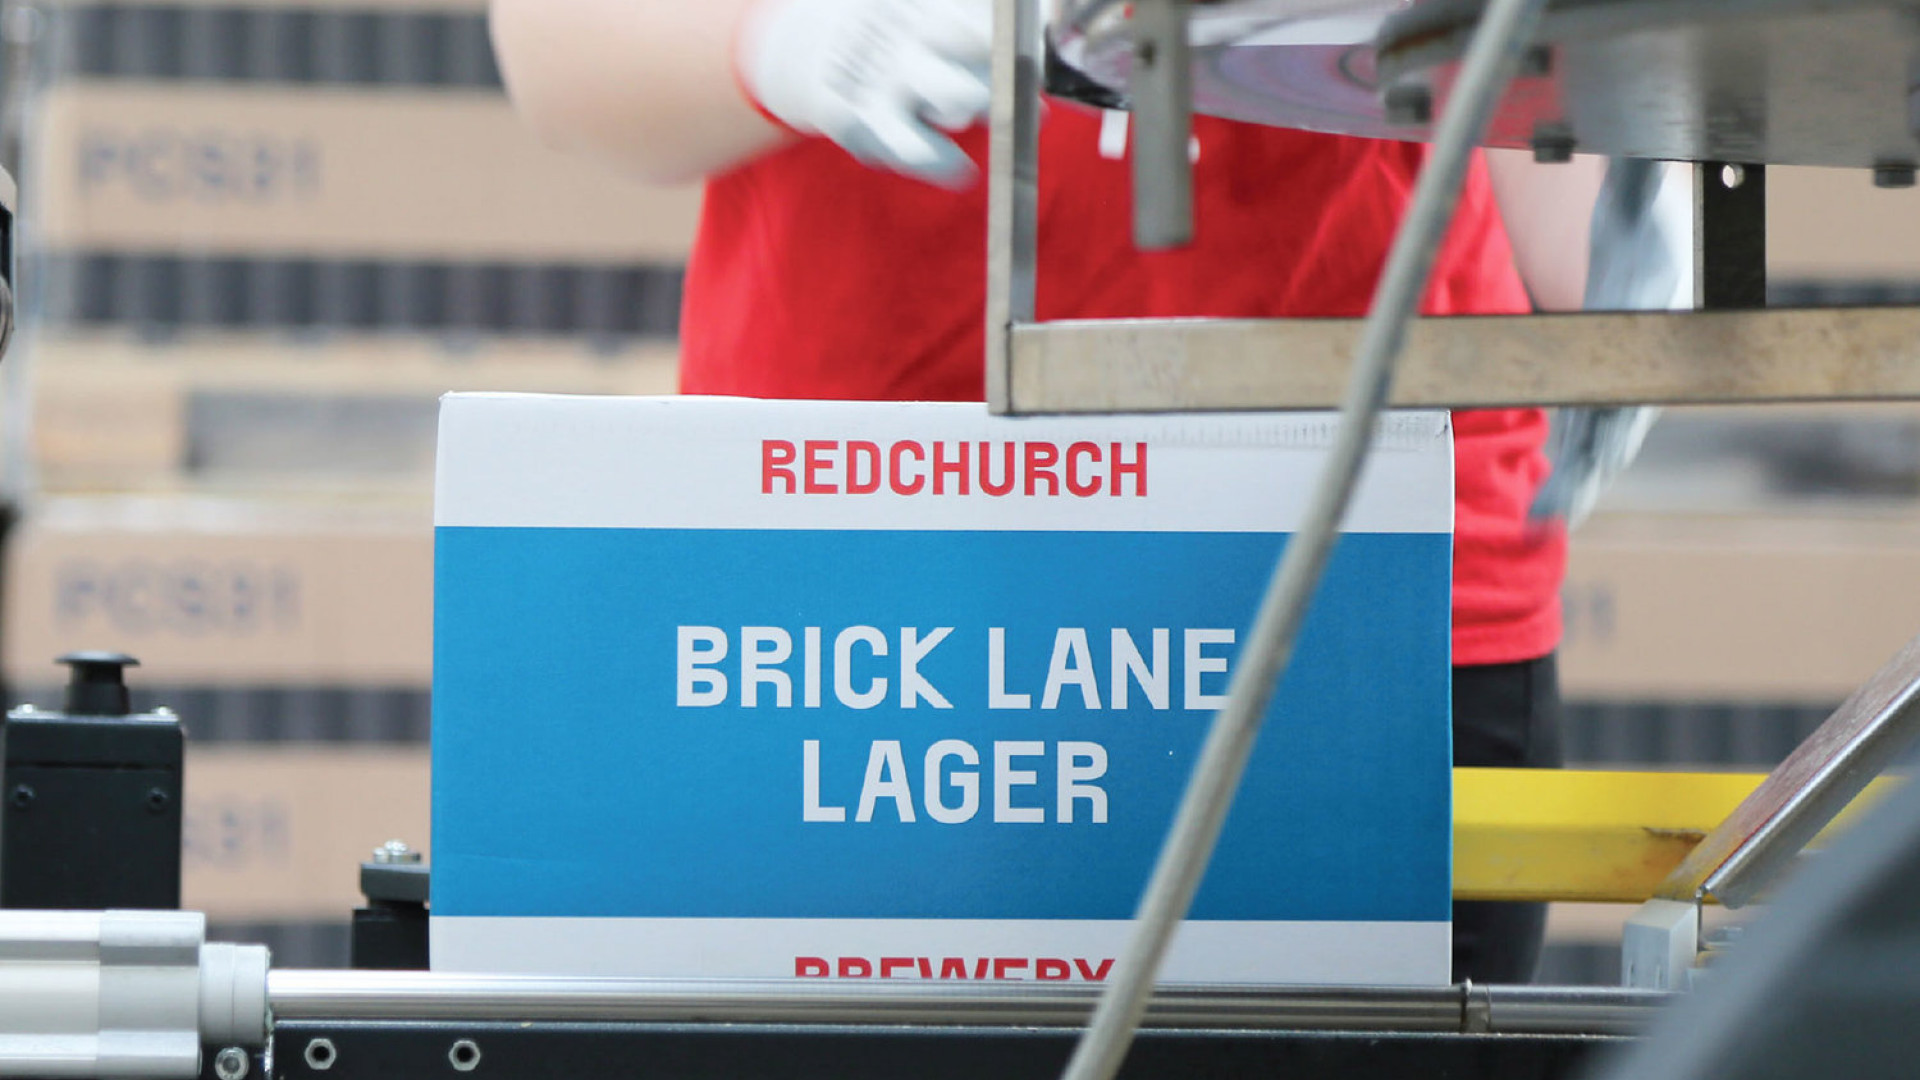 Packing Redchurch Brewery Beer at Harlow, Essex